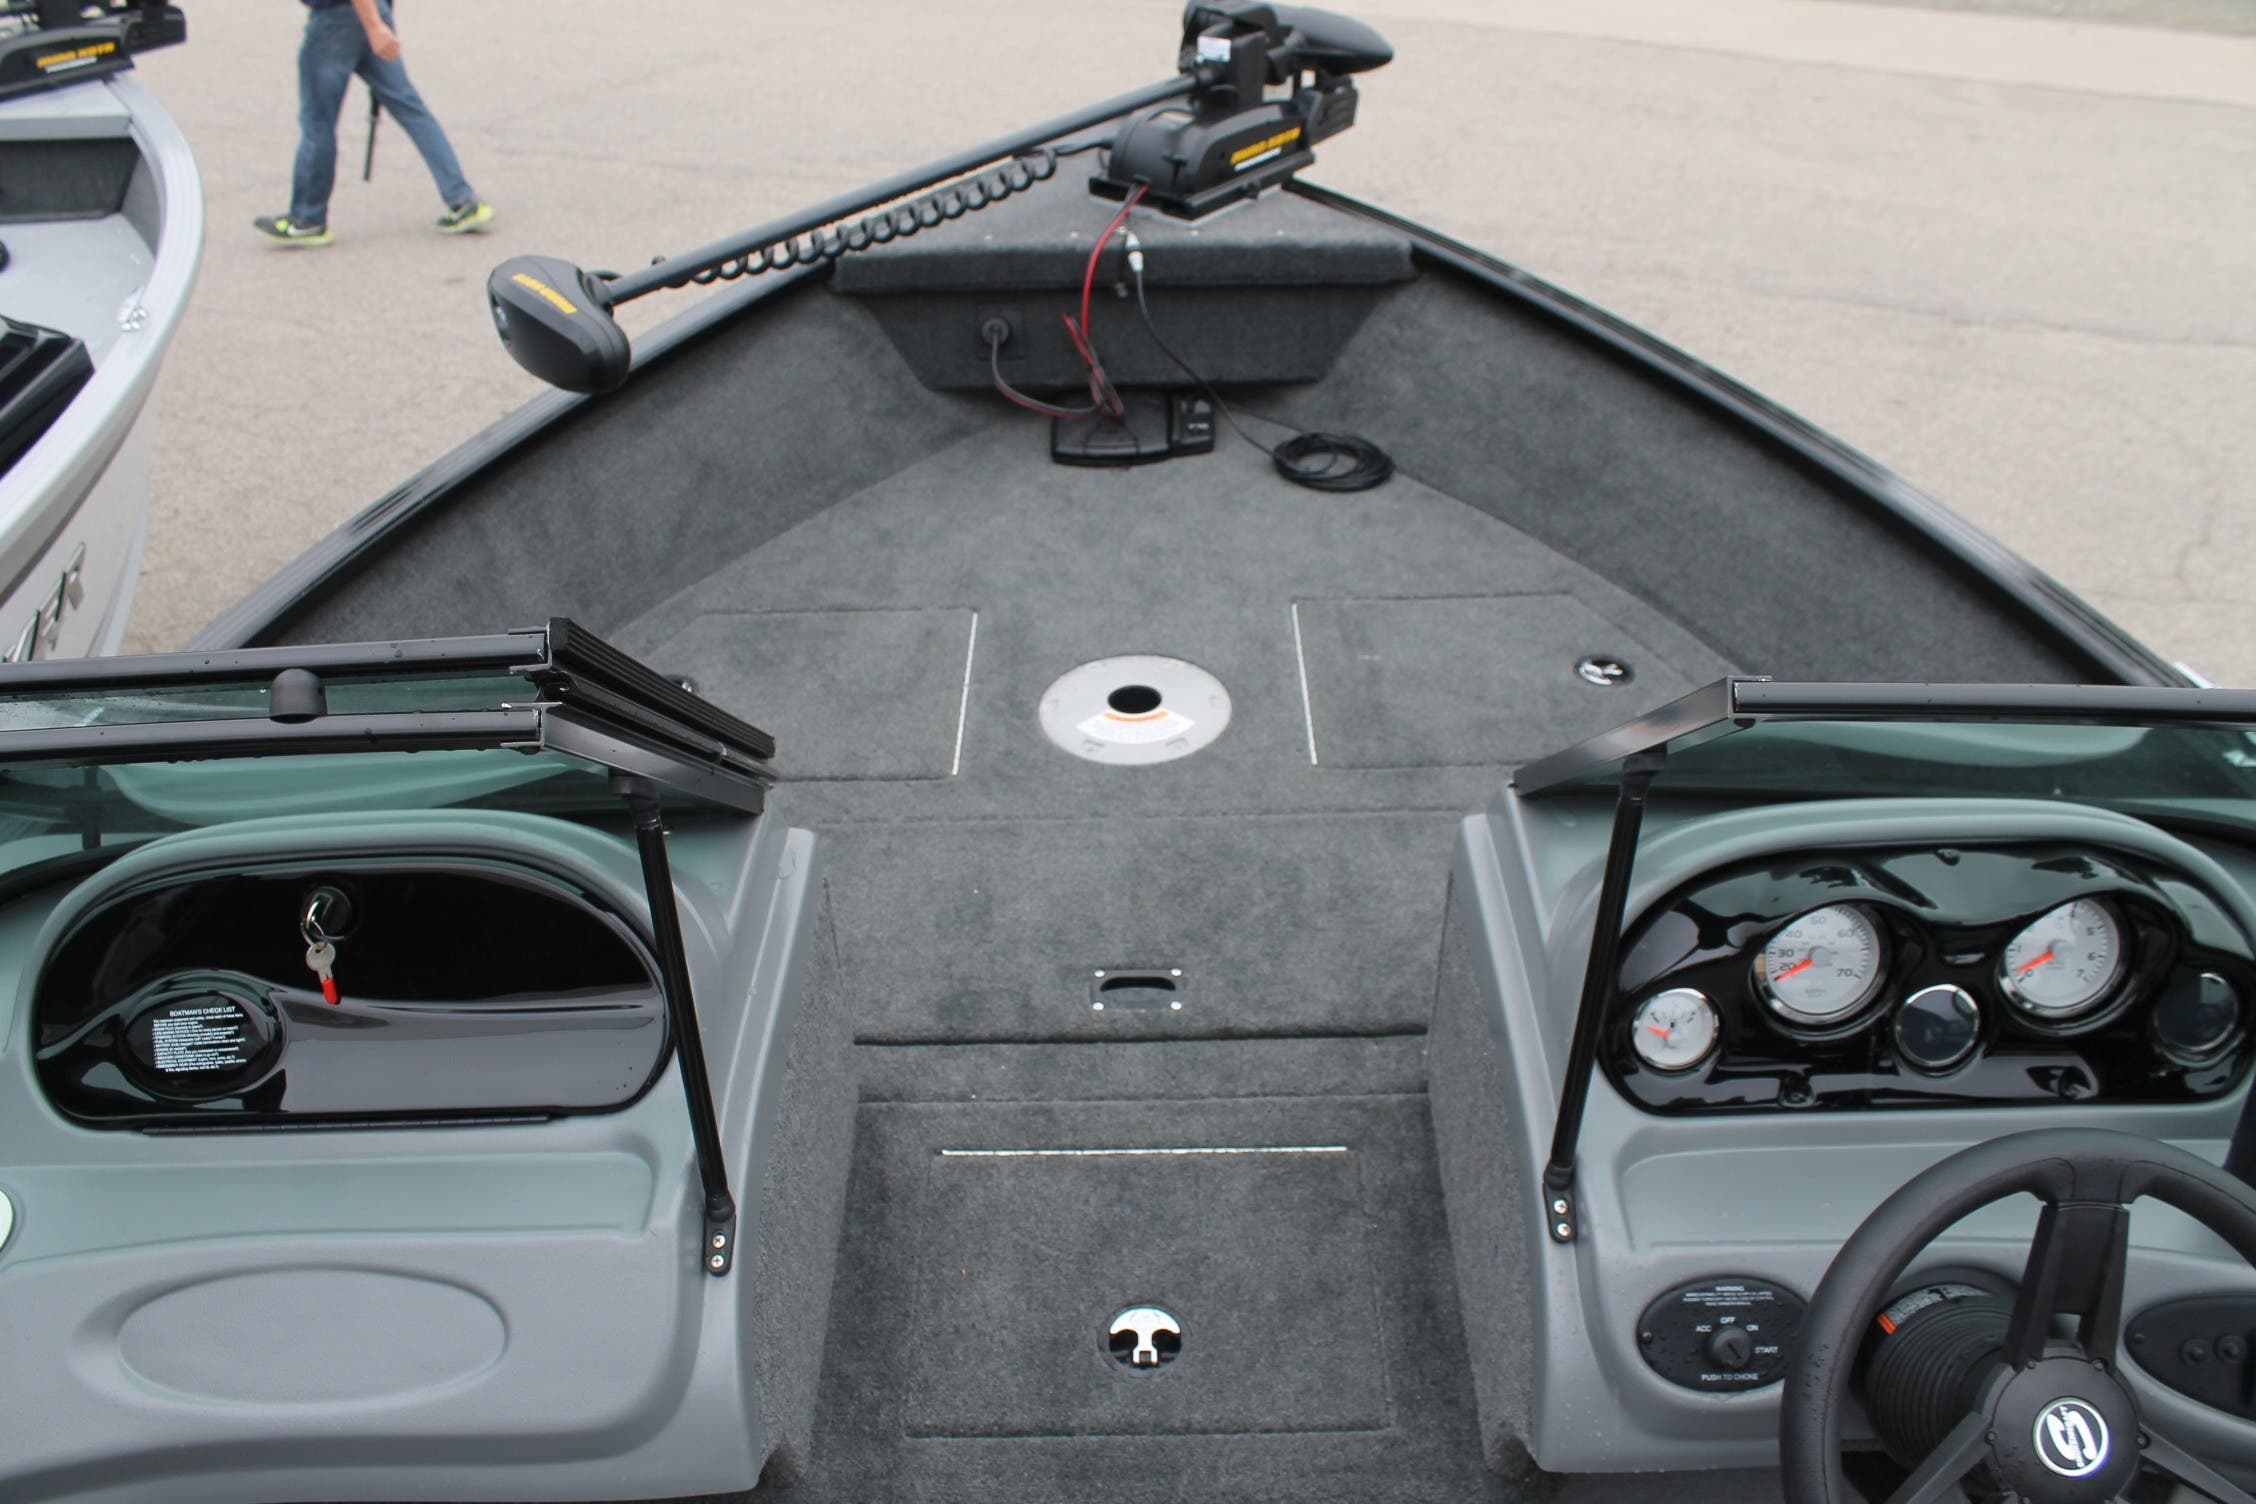 2021 Smoker Craft boat for sale, model of the boat is 172 Pro Angler & Image # 8 of 22